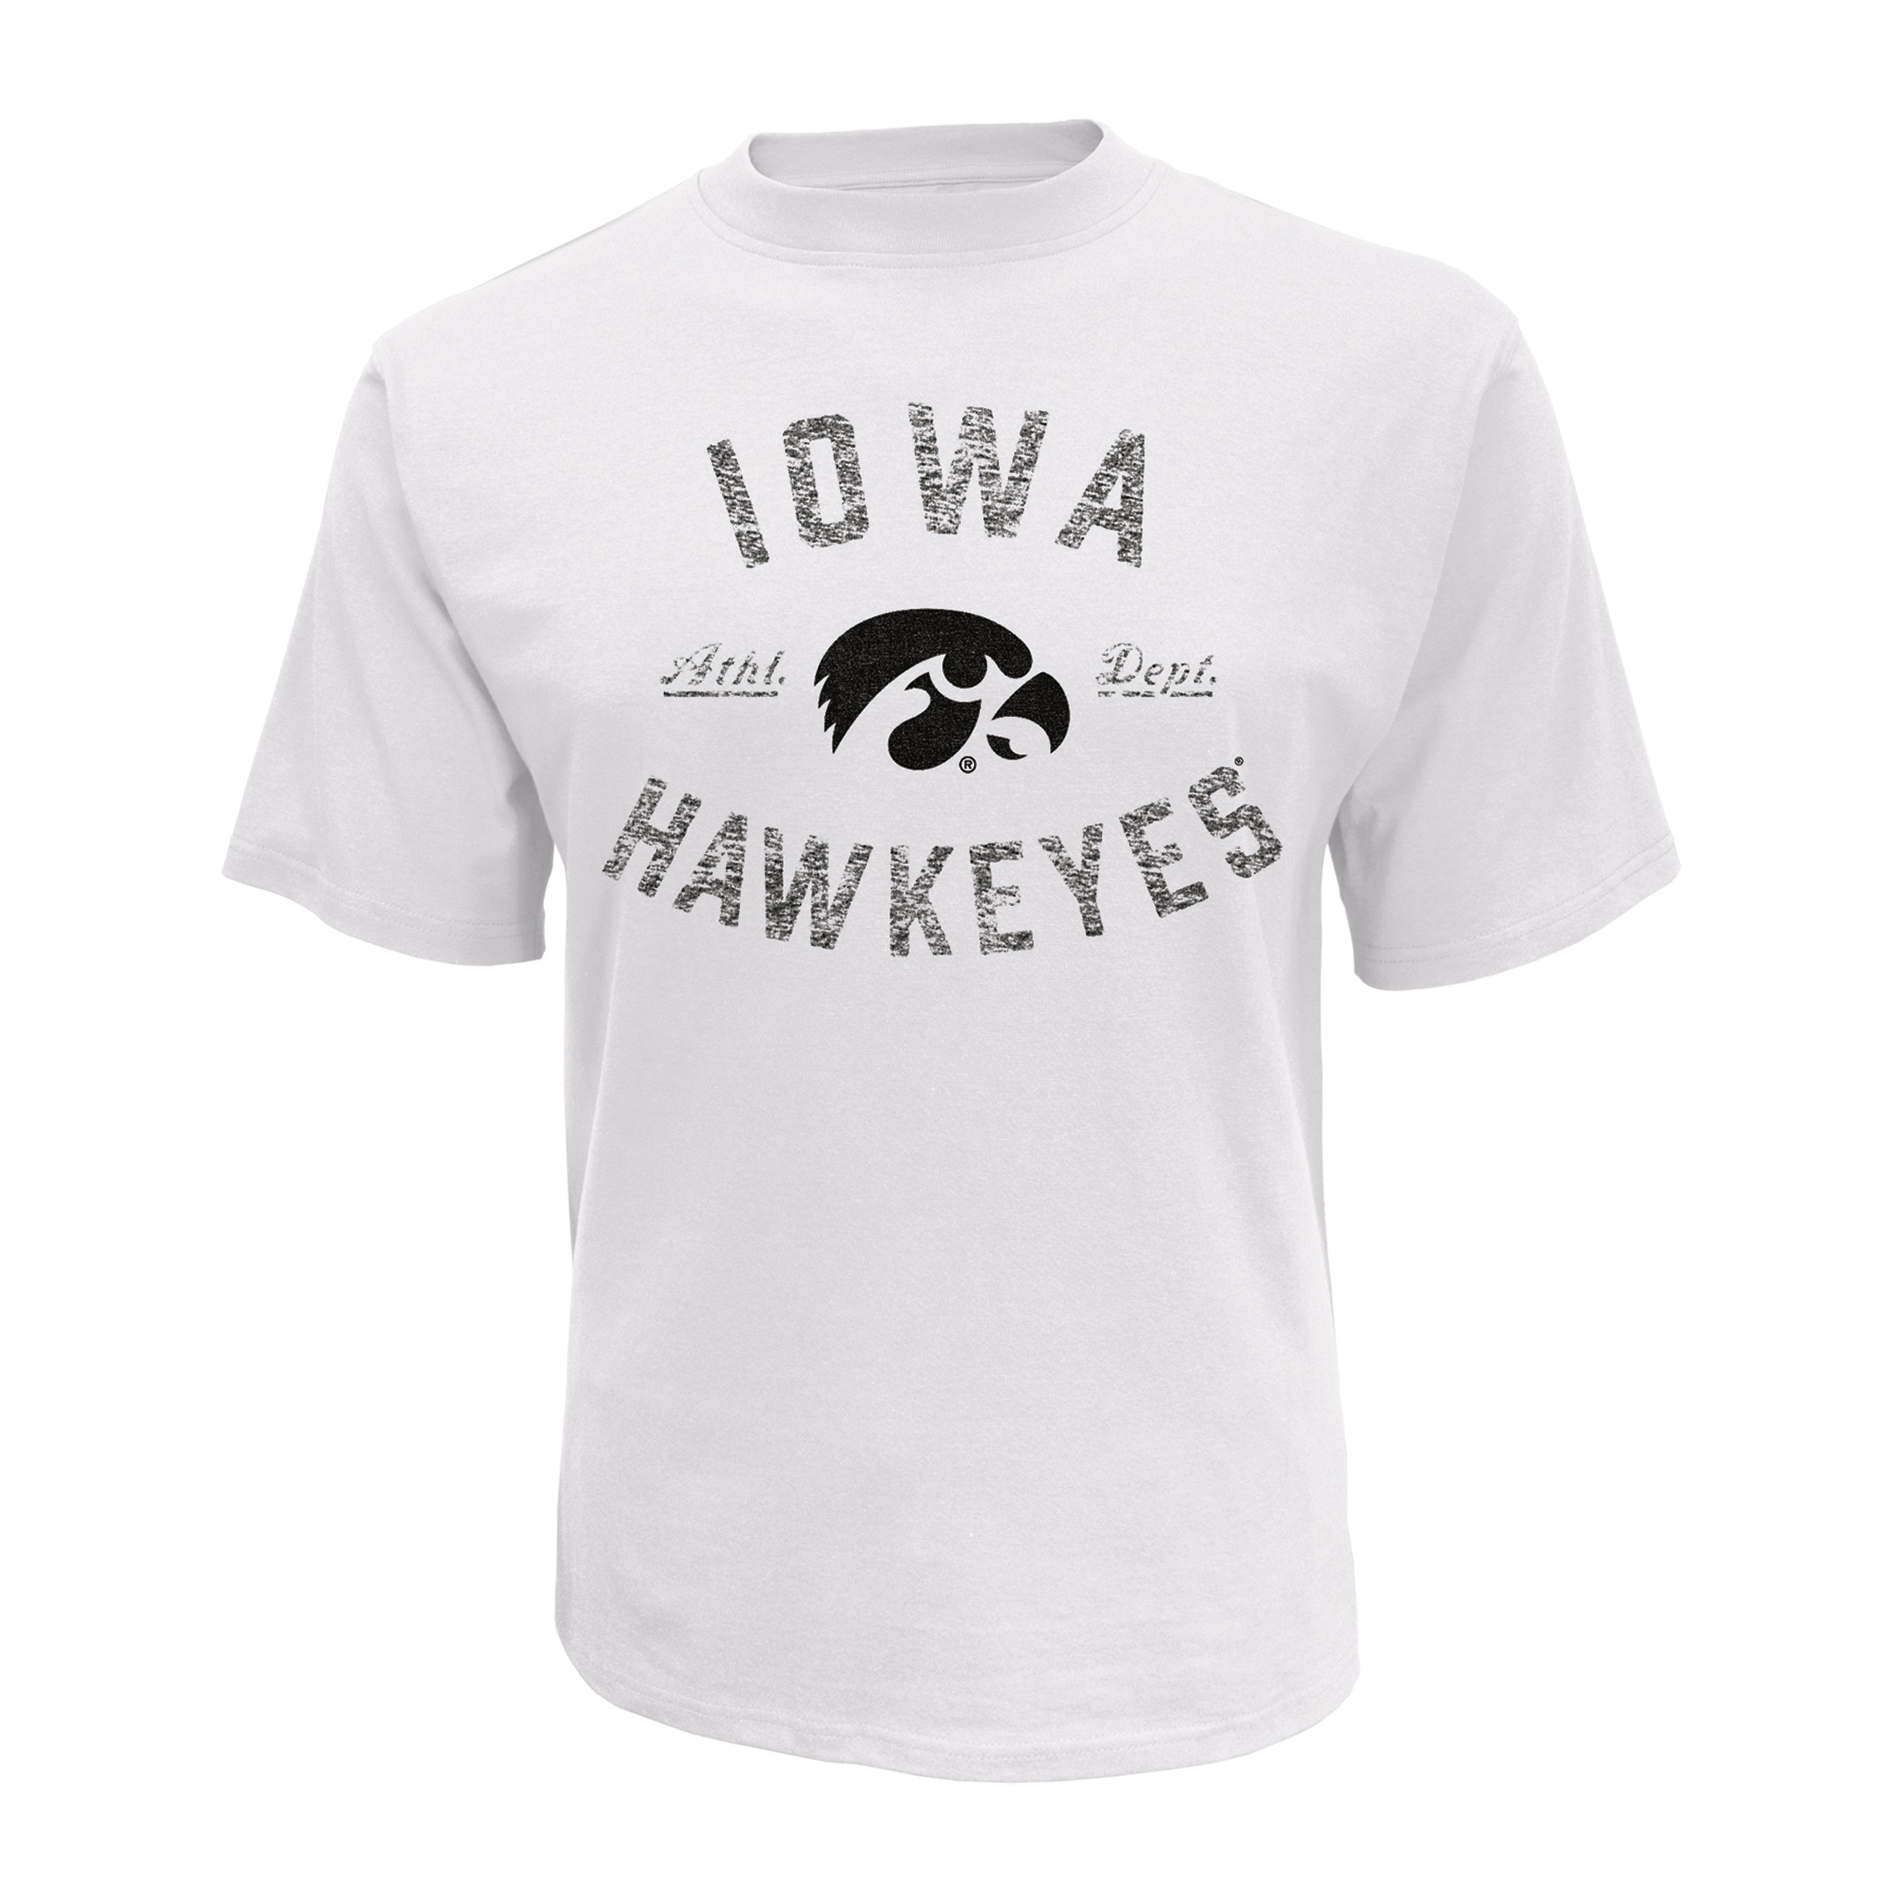 petite NCAA Men's Short-Sleeve T-Shirt - Iowa Hawkeyes, Size: XL